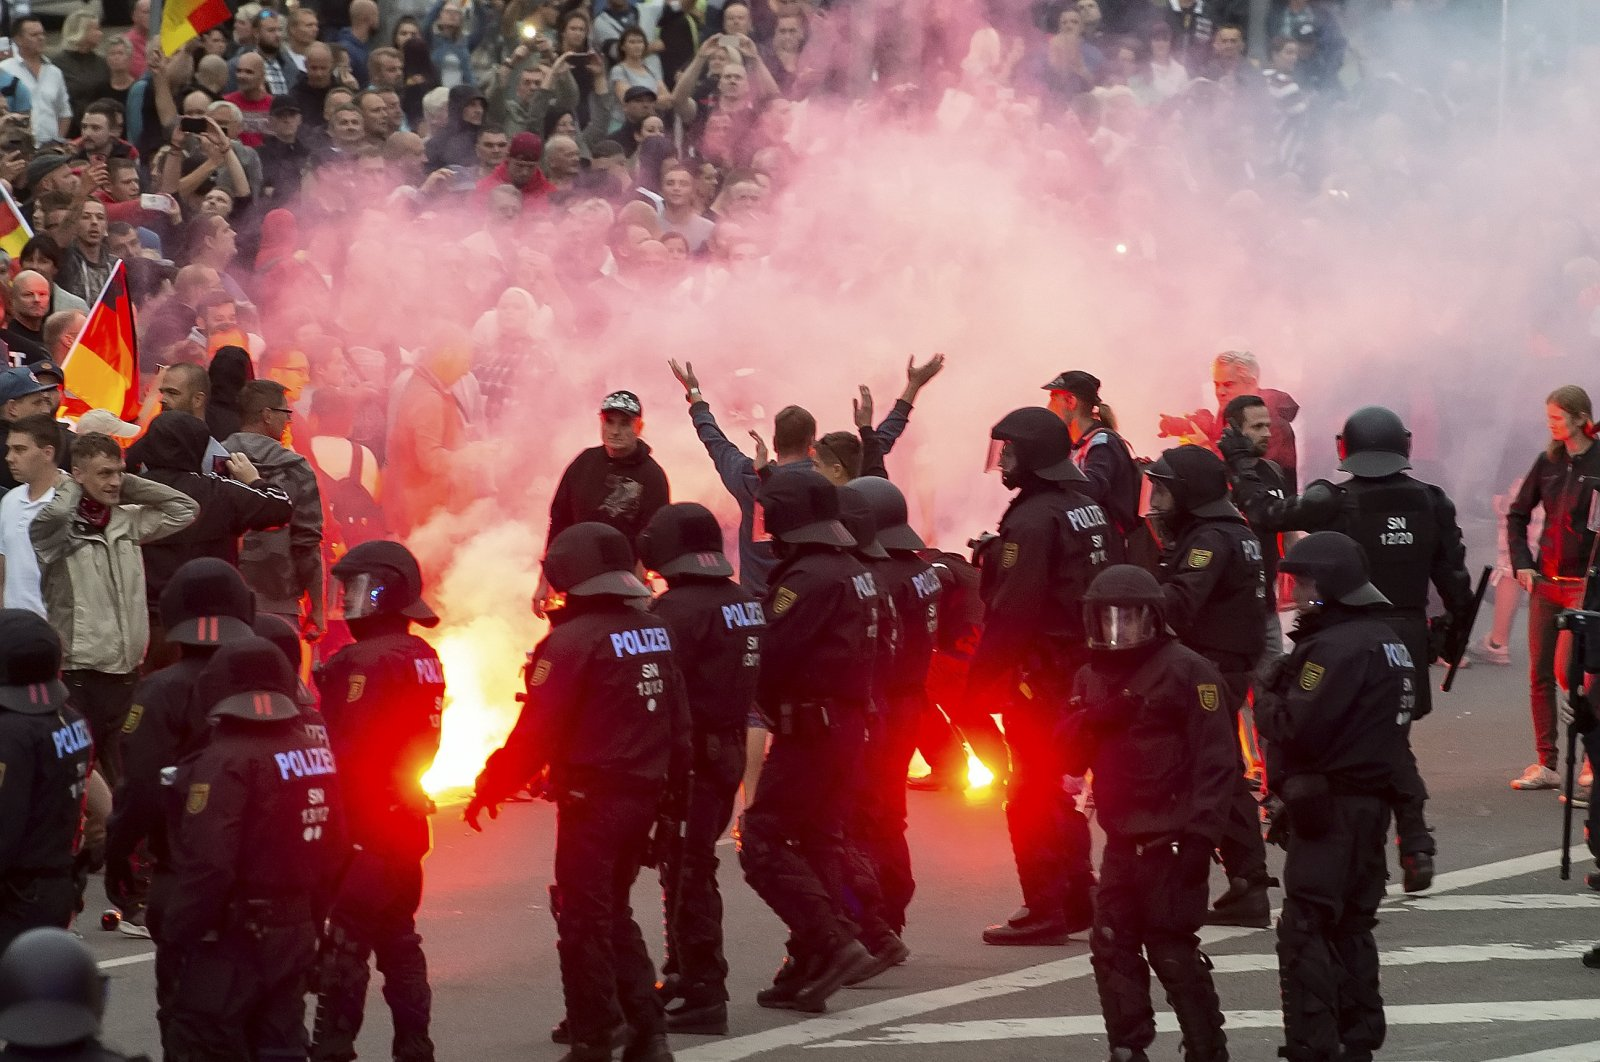 Protesters light fireworks during a far-right protest in Chemnitz, Germany, Aug. 27, 2018. (AP Photo)